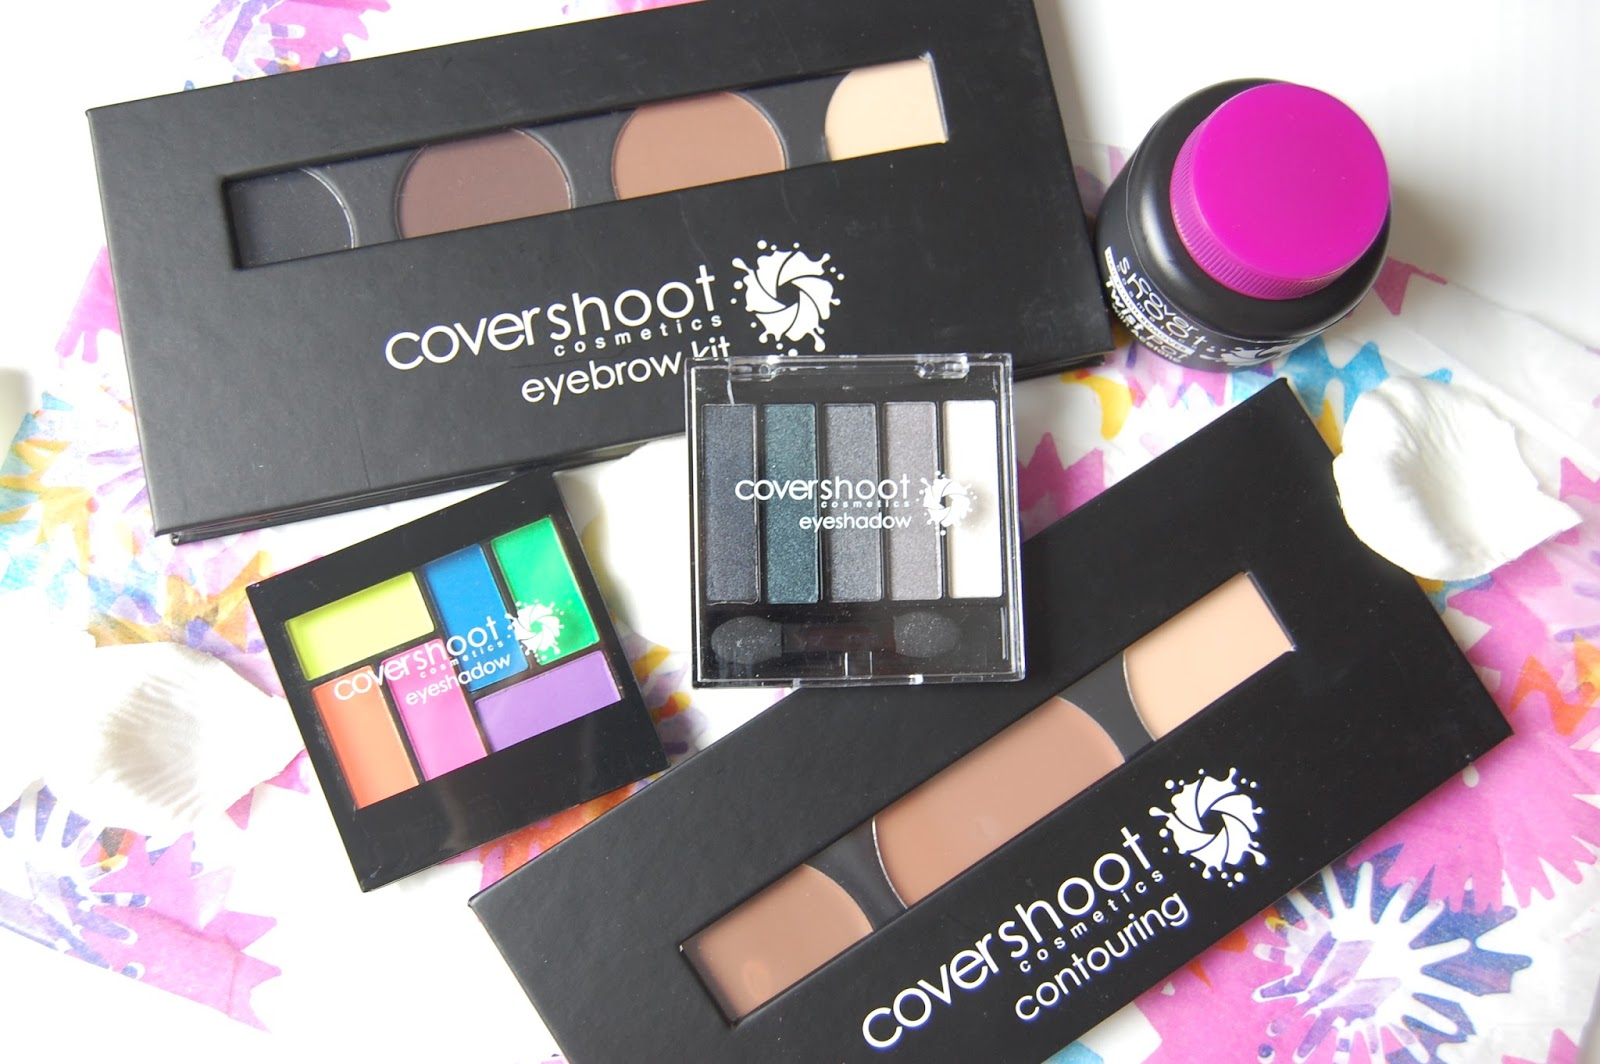 See my Covershoot Cosmetics review of their range